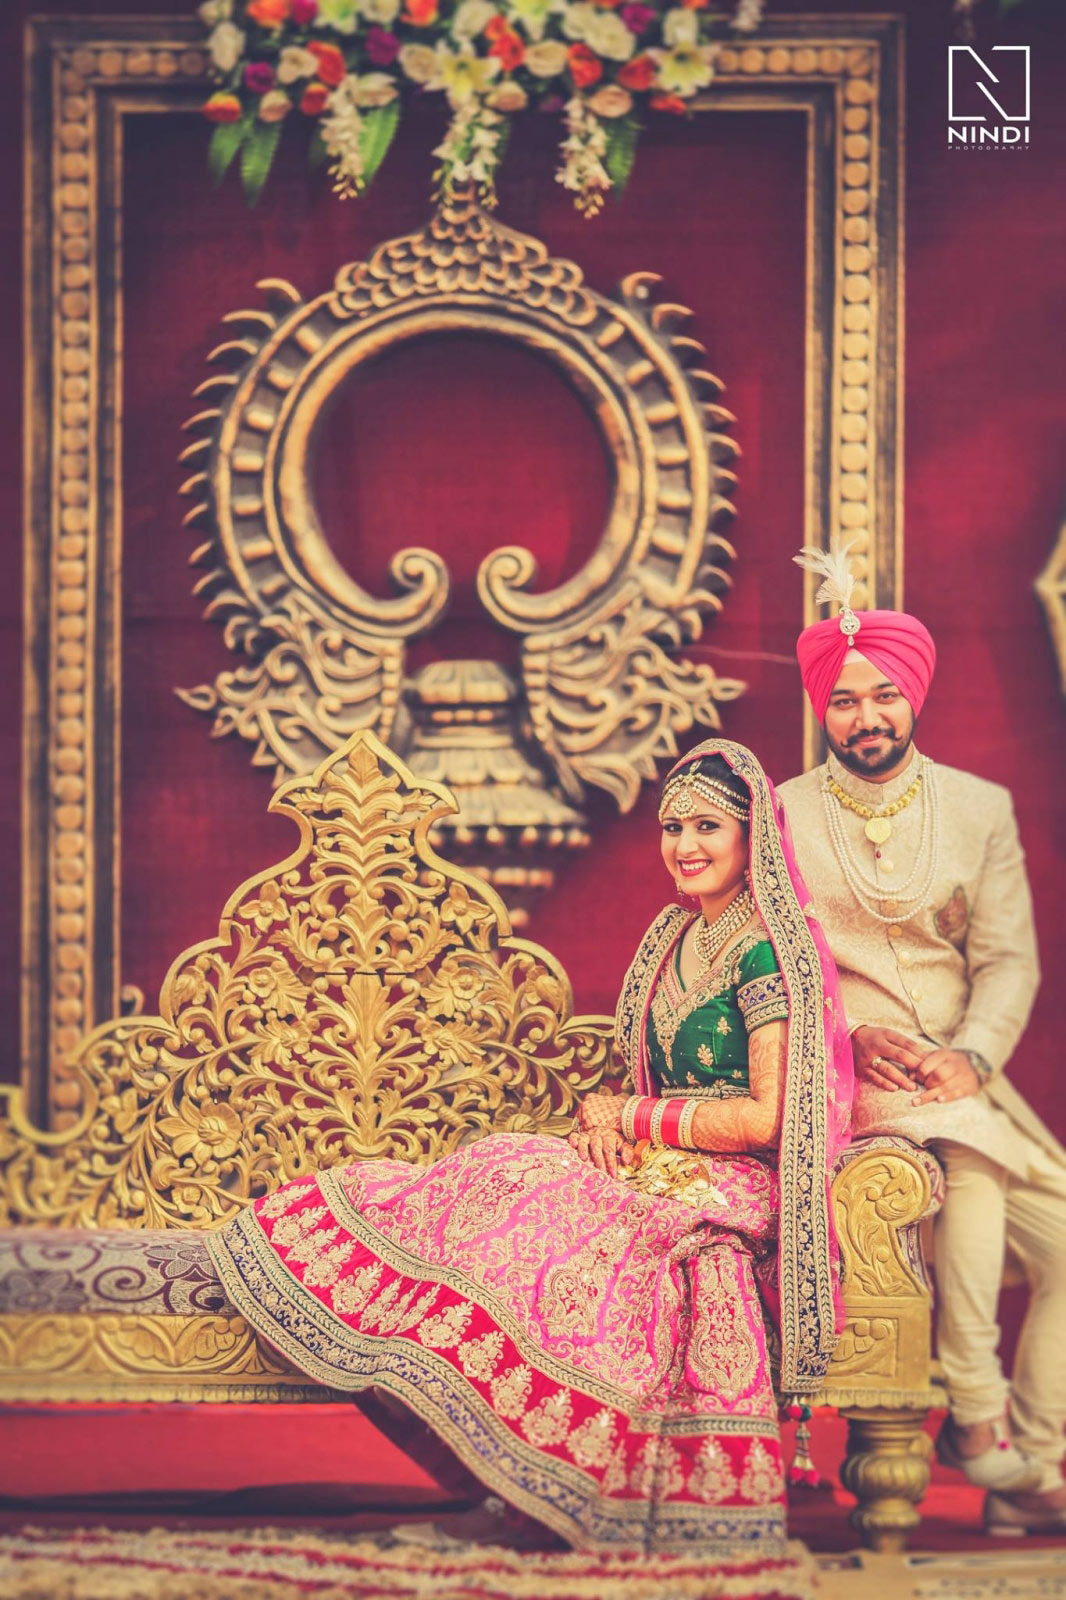 professional wedding photography by navjot singh nindi